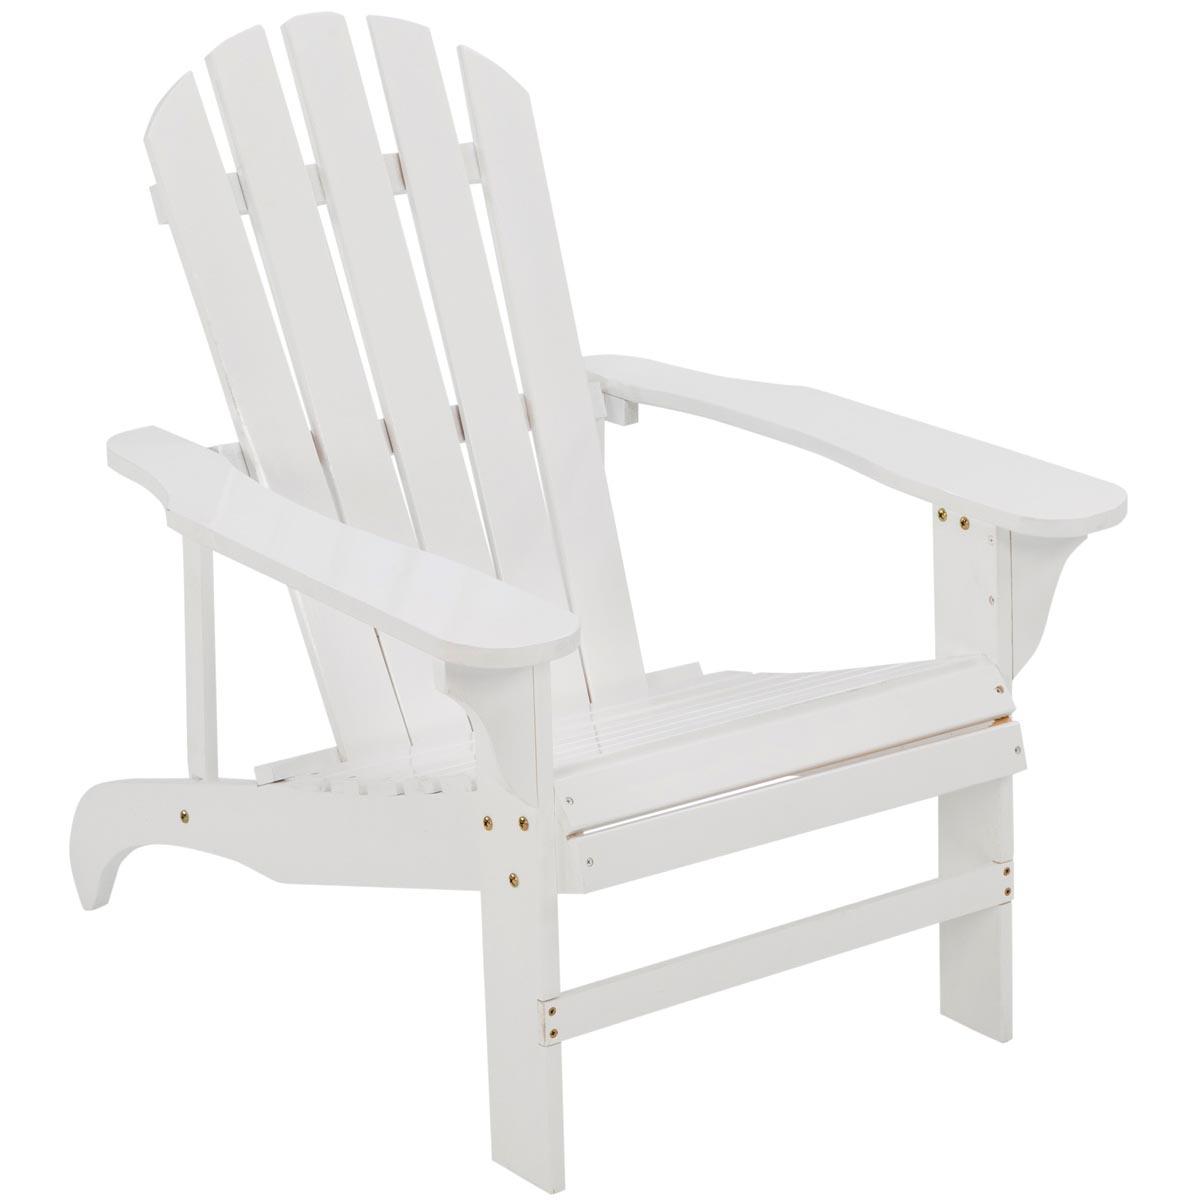 Picture of Seasonal Trends JN 16W Adirondack Chair, 5-1/4 in W, 20-1/2 in D, 36-3/4 in H, Cypress Seat, Cypress Frame